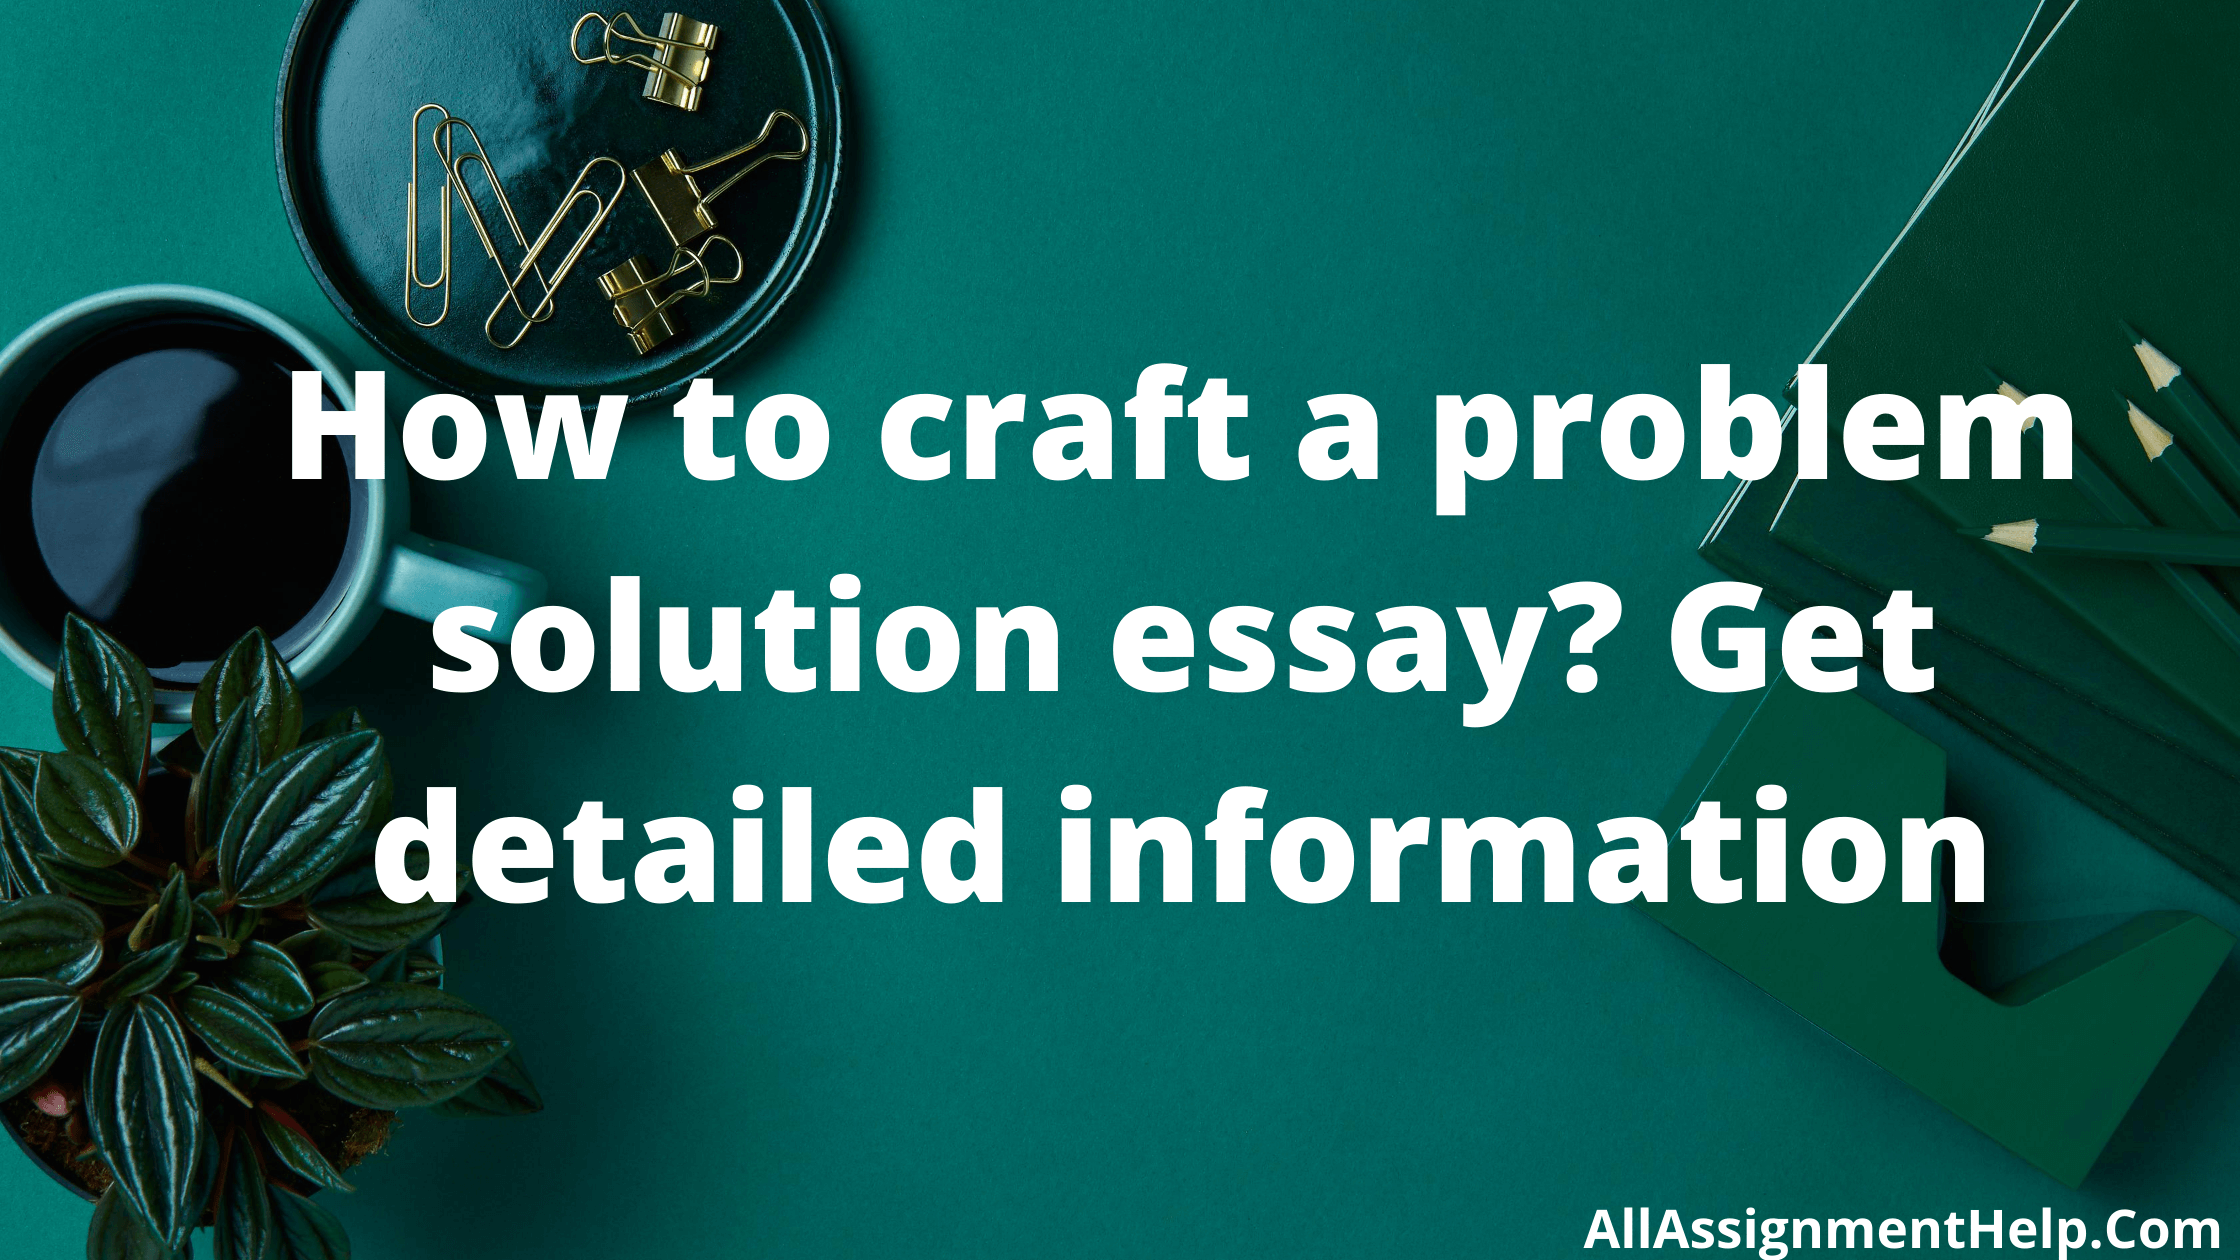 How-to-craft-a-problem-solution-essay